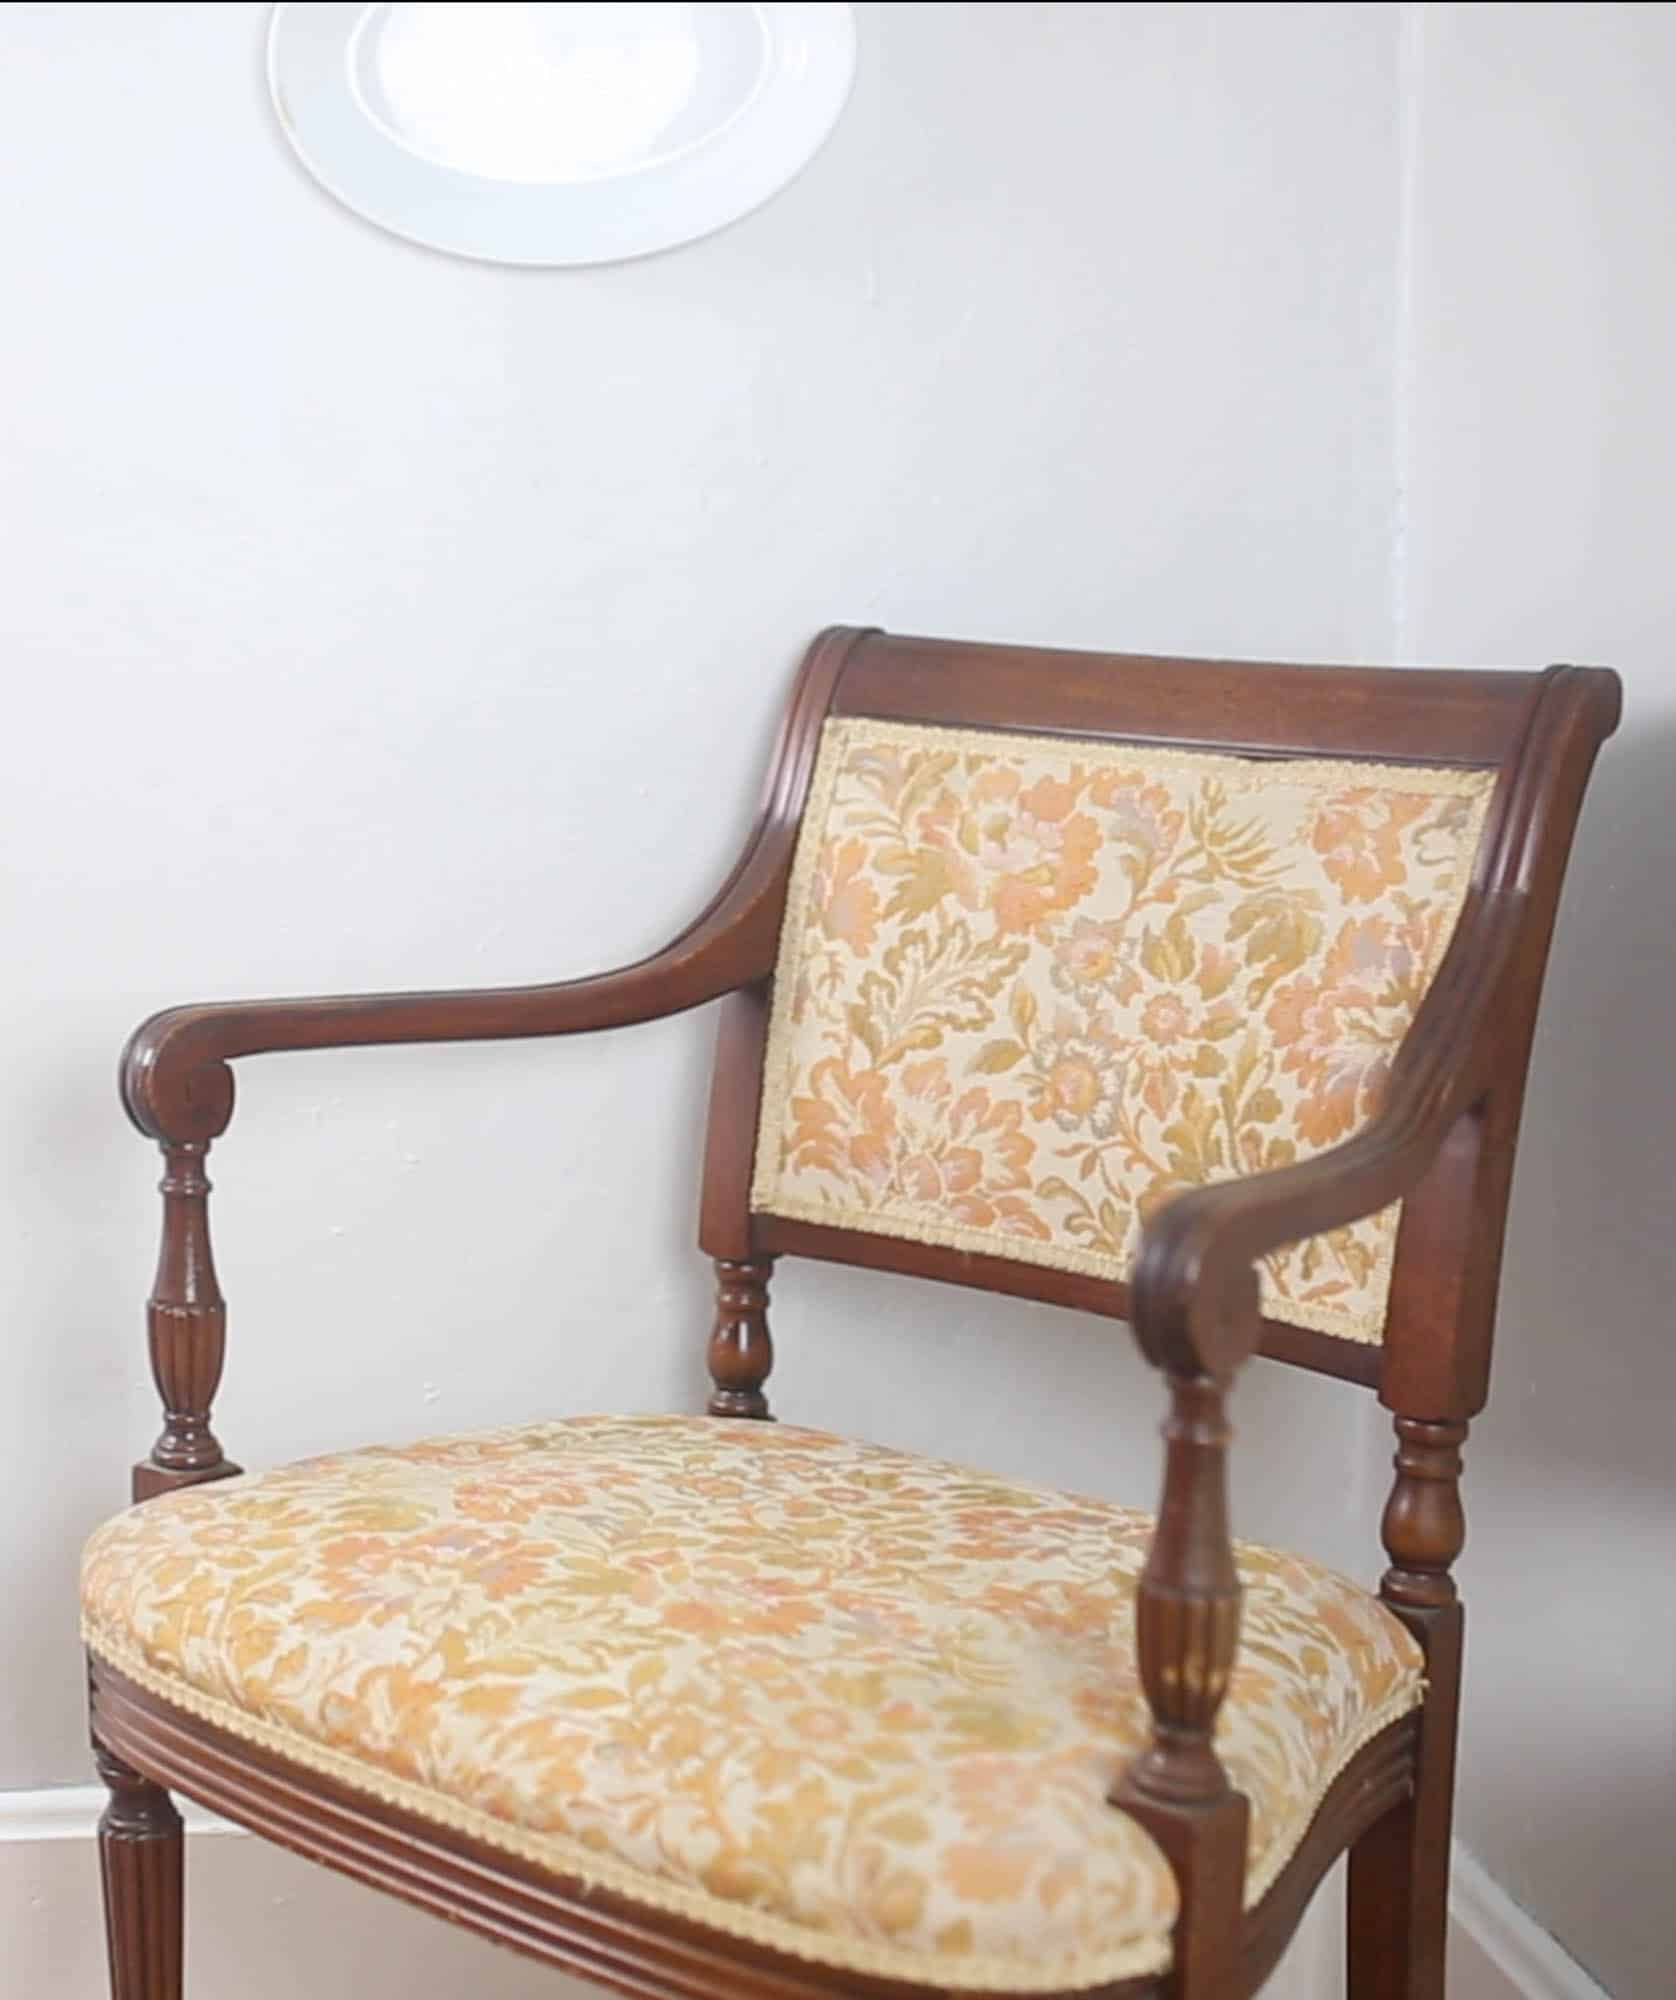 Tutorial For Reupholstering An Old Chair With A Staple Gun And Hot Glue